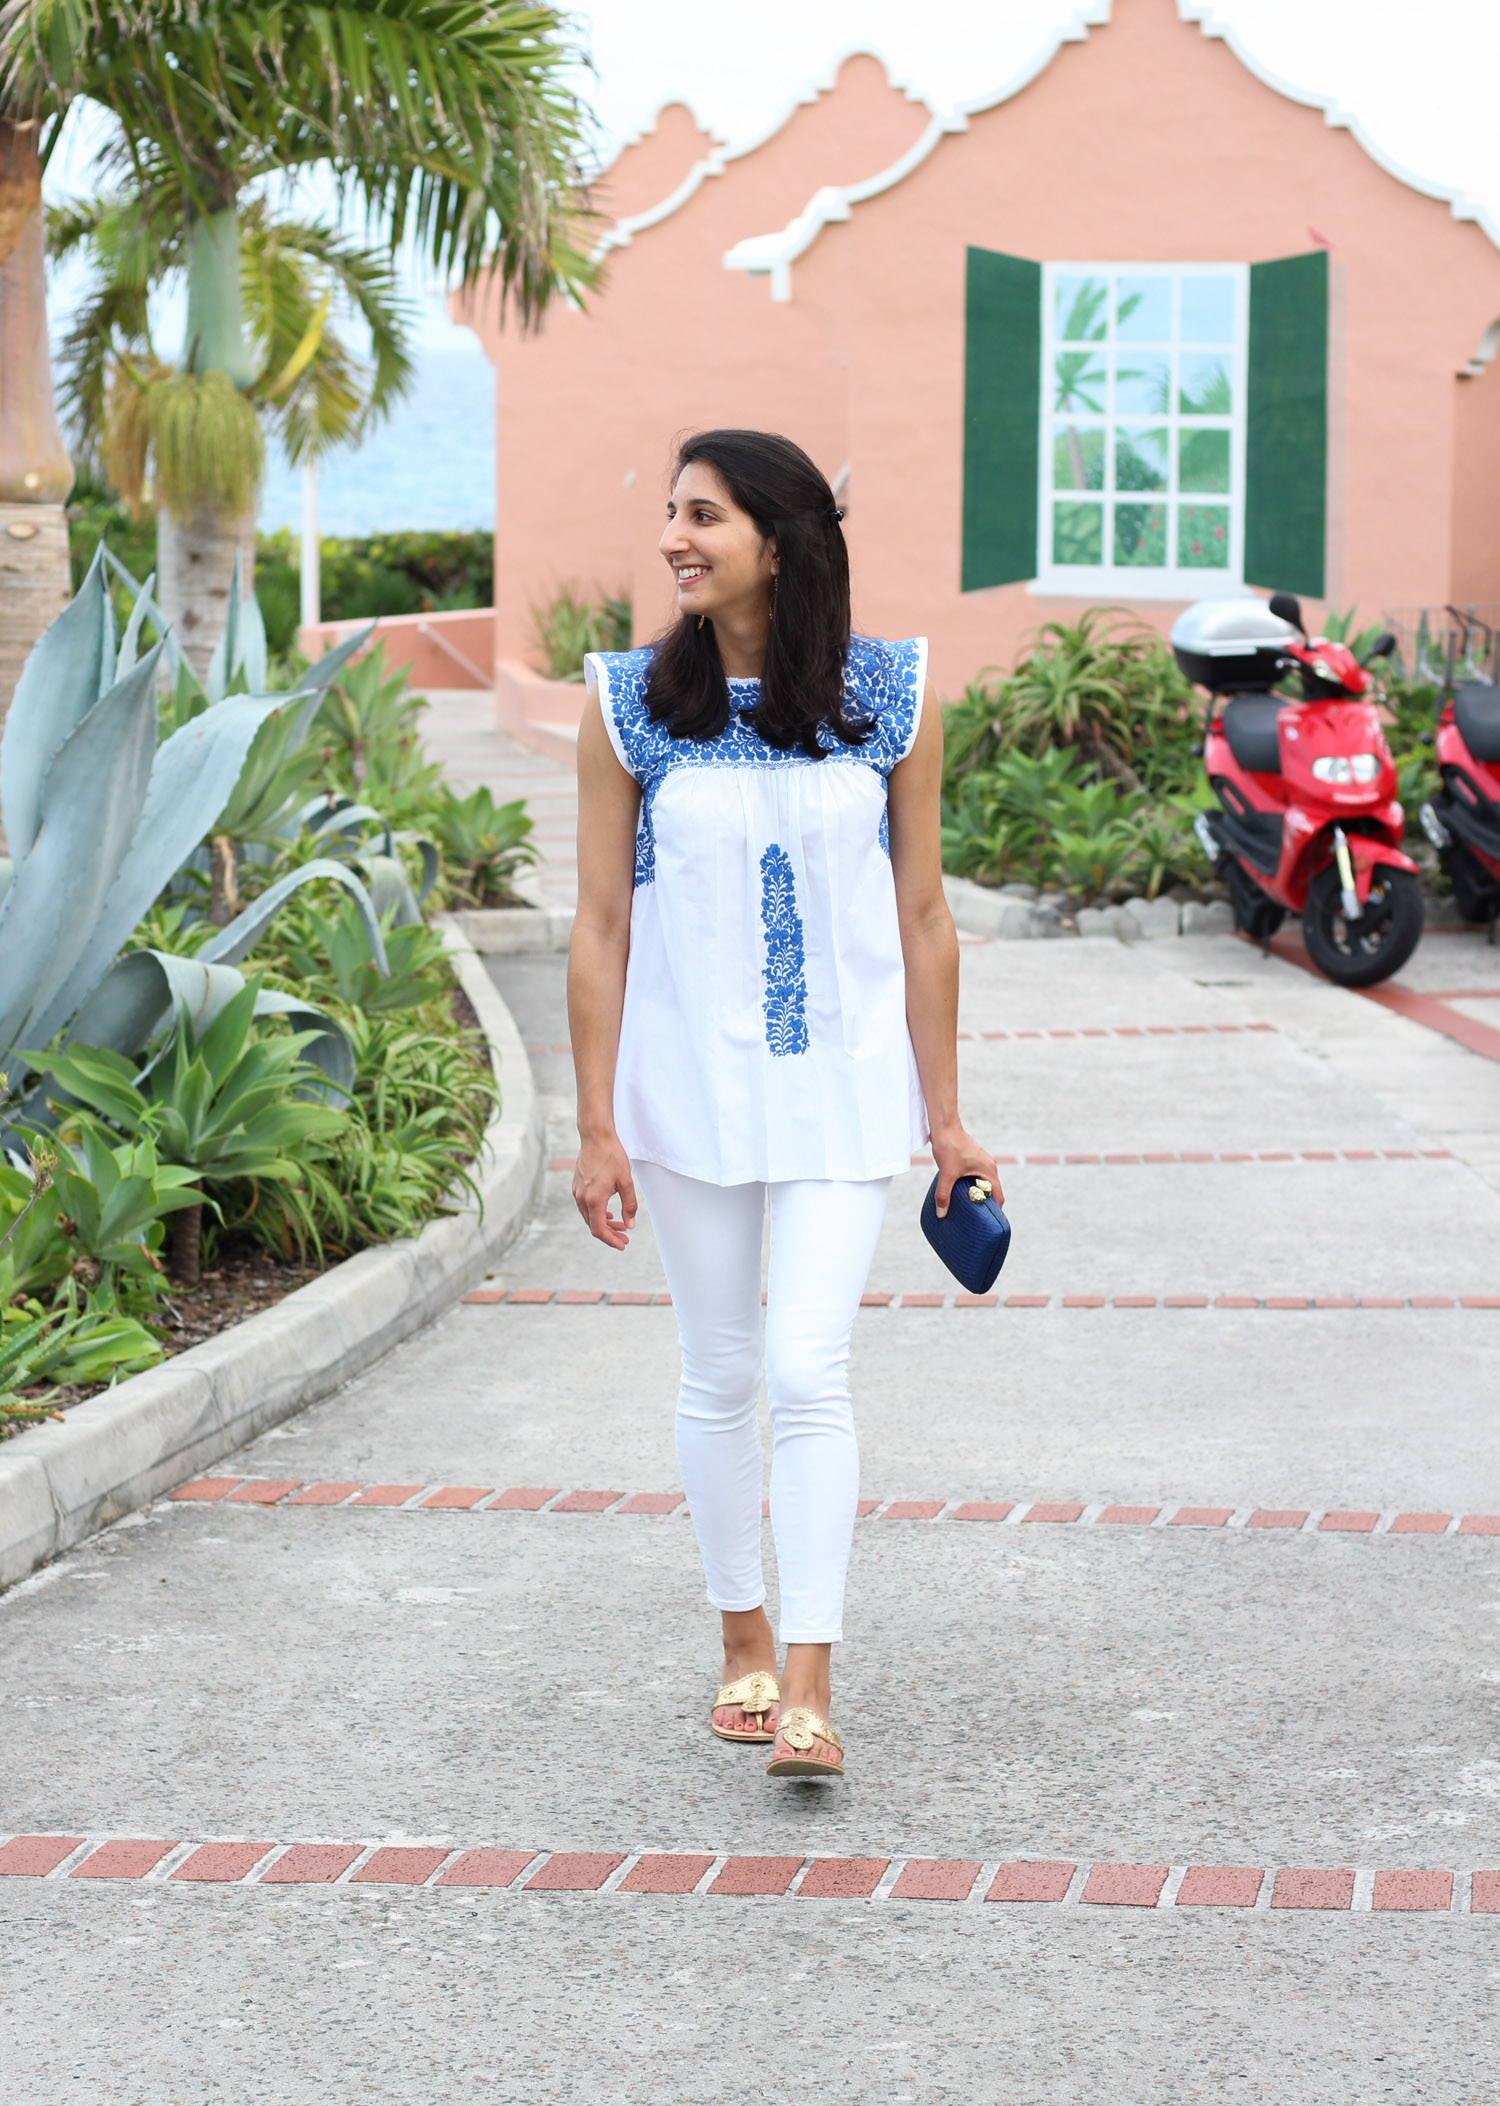 Mi Golondrina blue and white top featured by popular DC style blogger, Monica Dutia